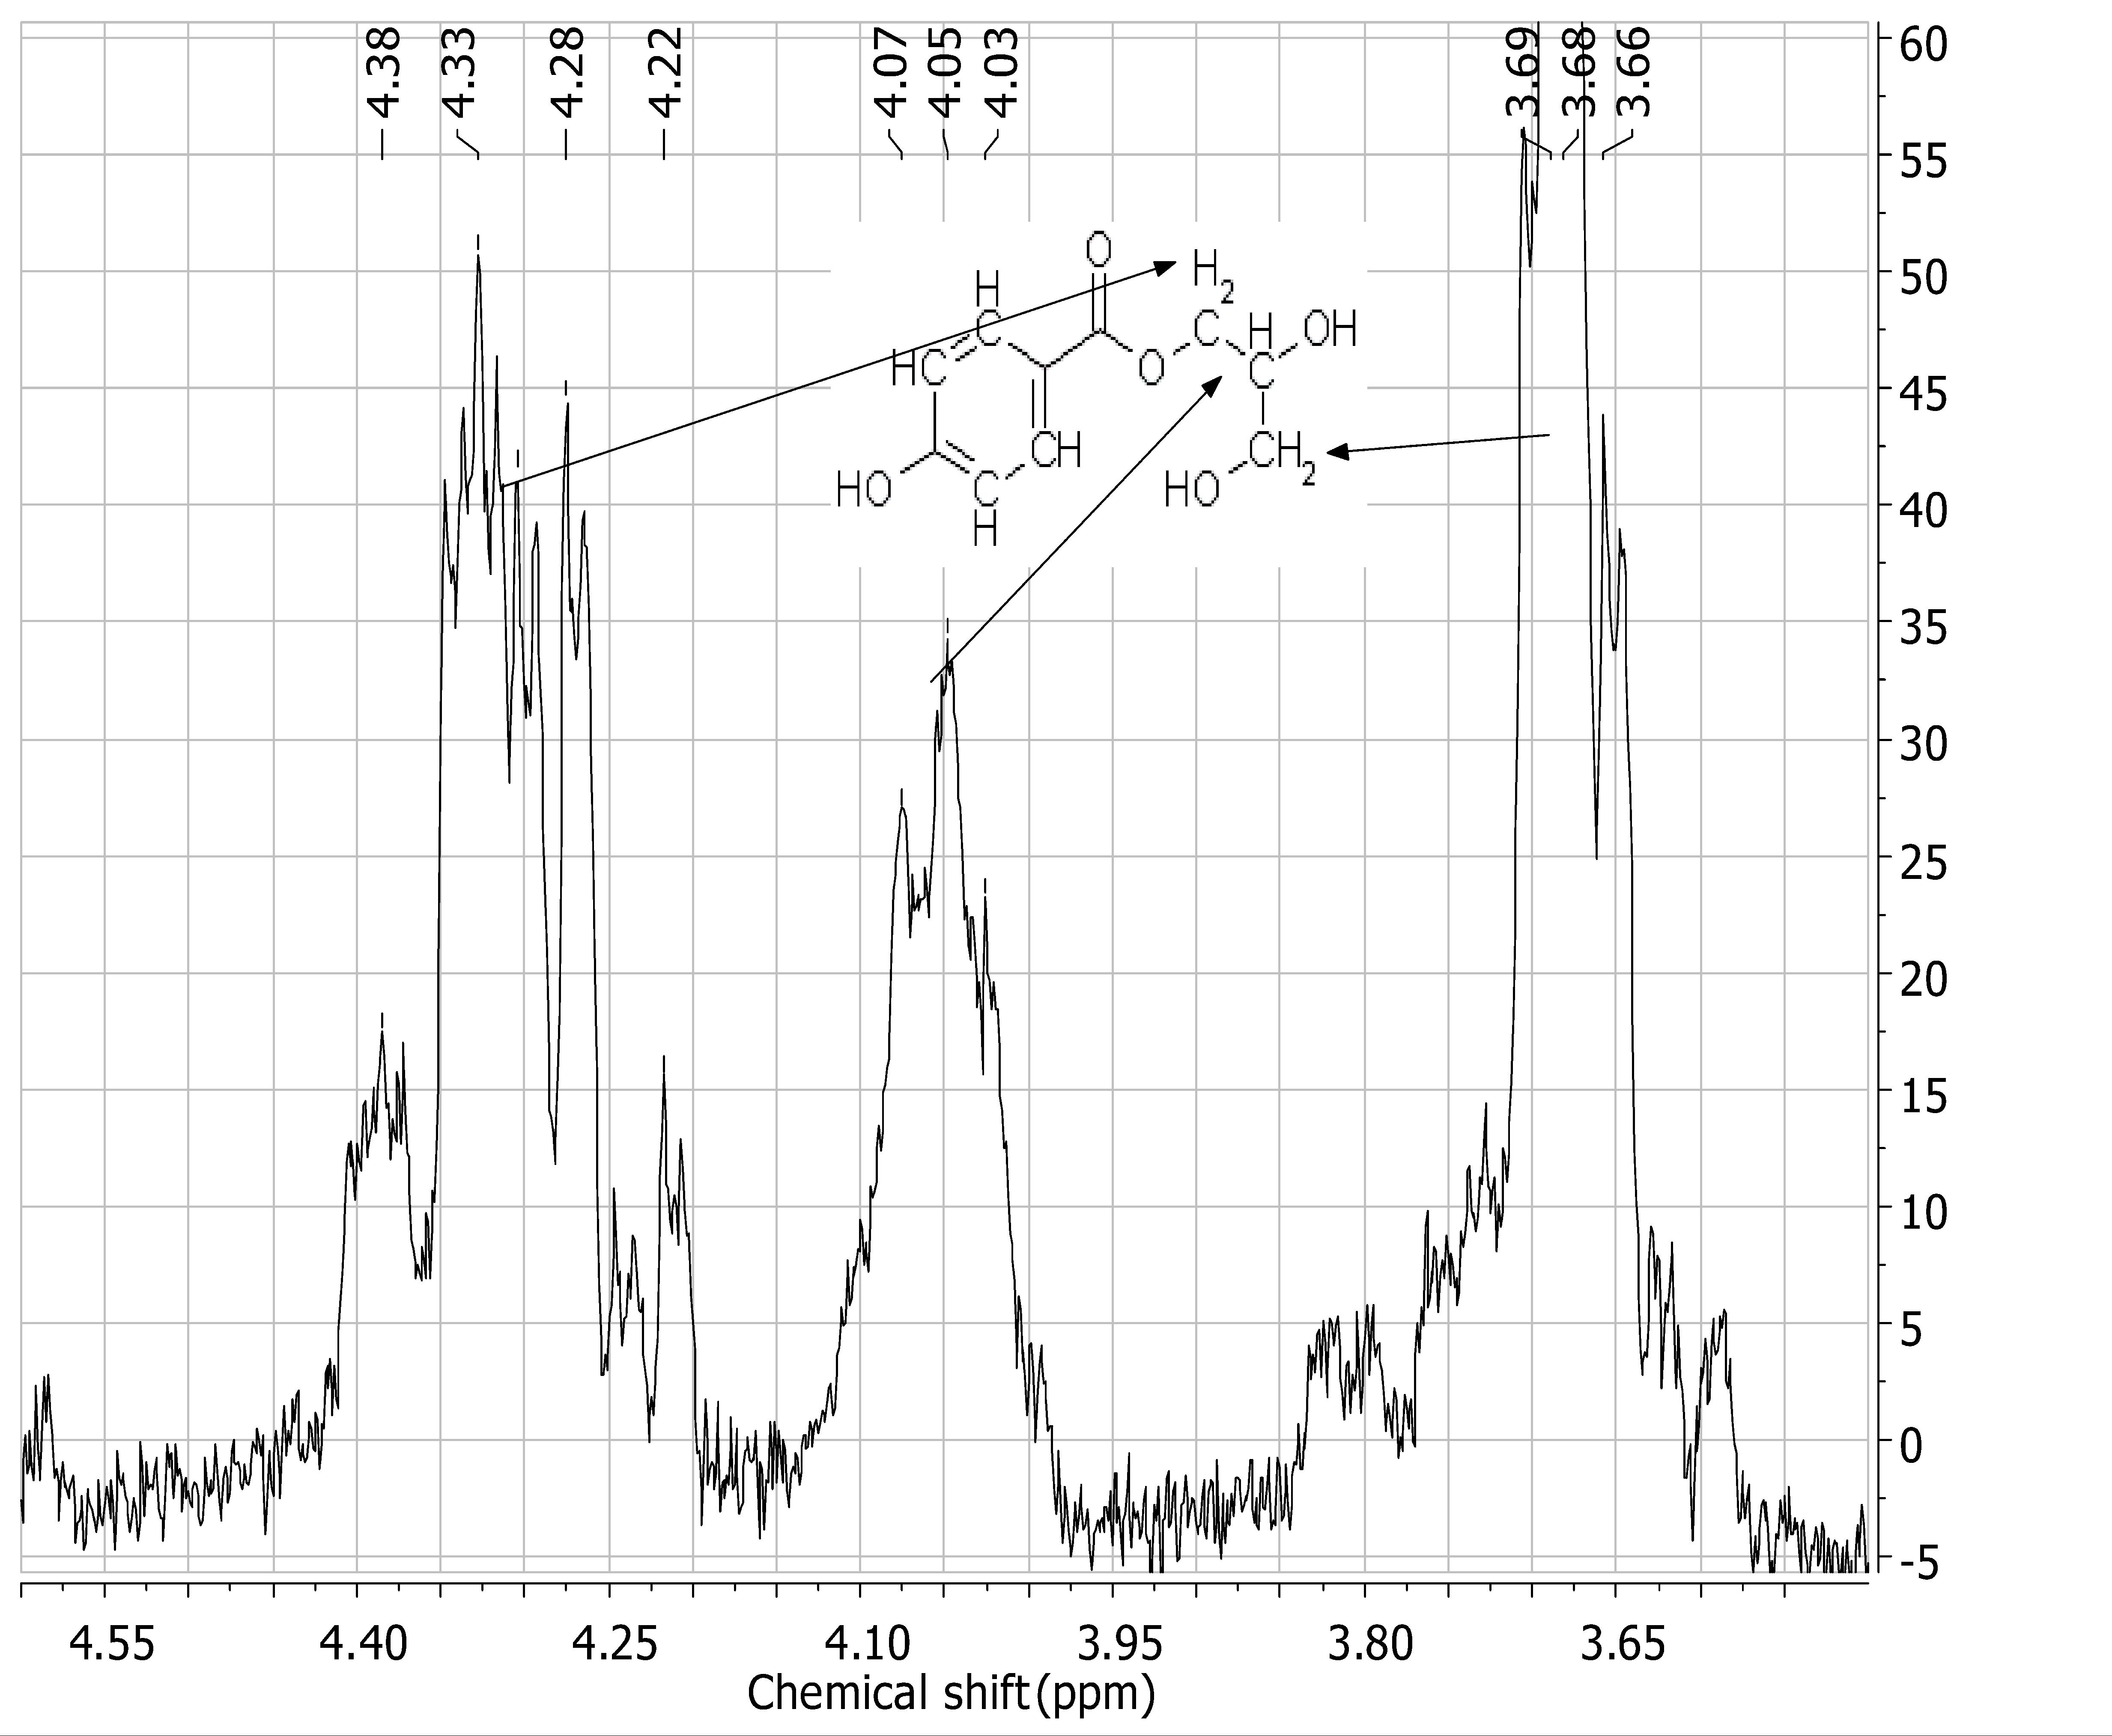 hydrolysis and transesterification of parabens in a aqueous solution Salt Water Solution Diagram of 1h nmr spectra of a saturated solution of 2 3 diohpp in deuterium oxide particular multiplets are assigned to corresponding hydrogens by arrows